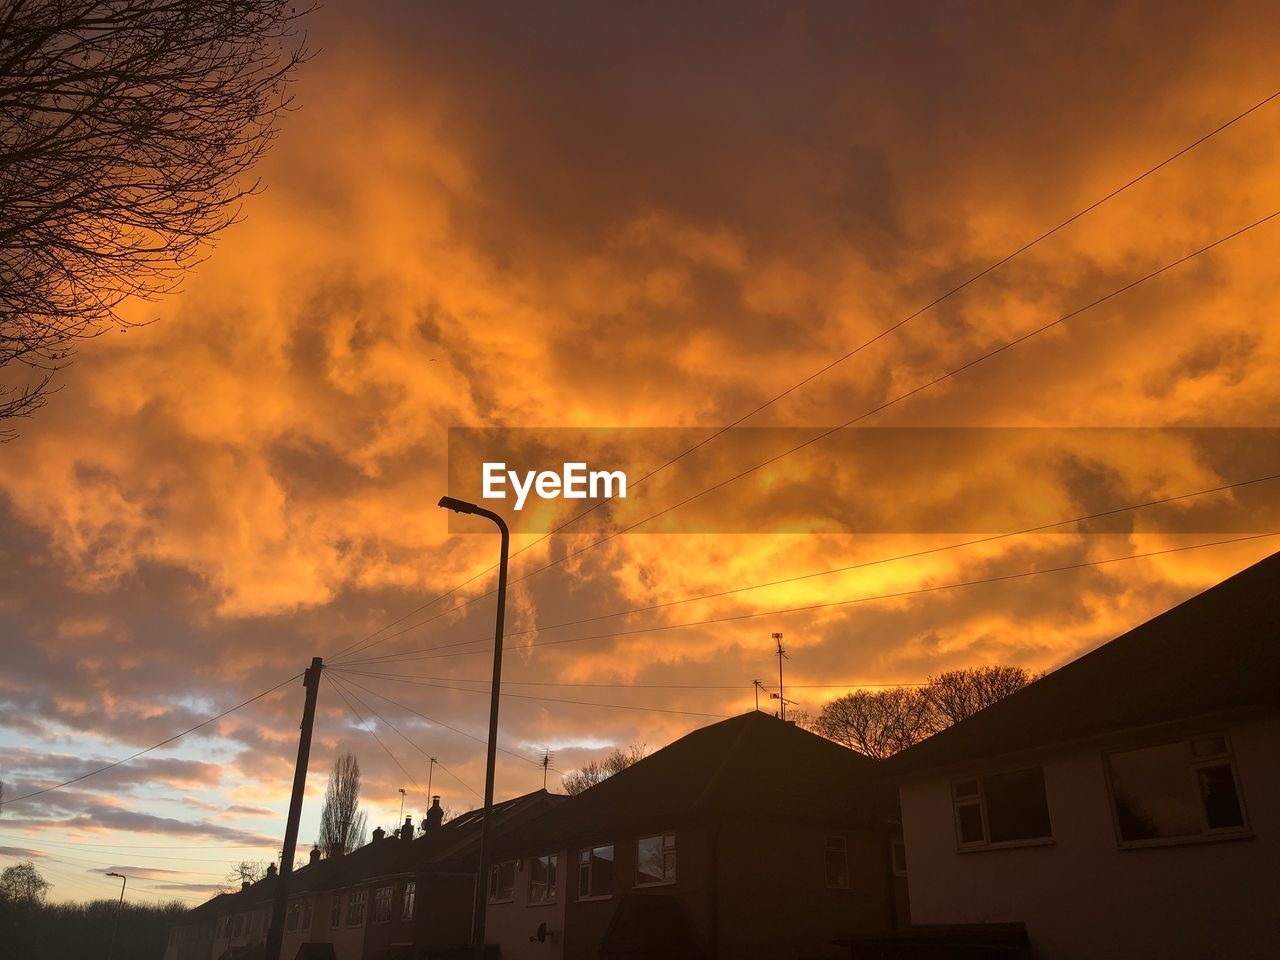 architecture, cloud - sky, sunset, built structure, building exterior, sky, building, silhouette, no people, orange color, nature, street light, beauty in nature, street, house, dramatic sky, residential district, low angle view, outdoors